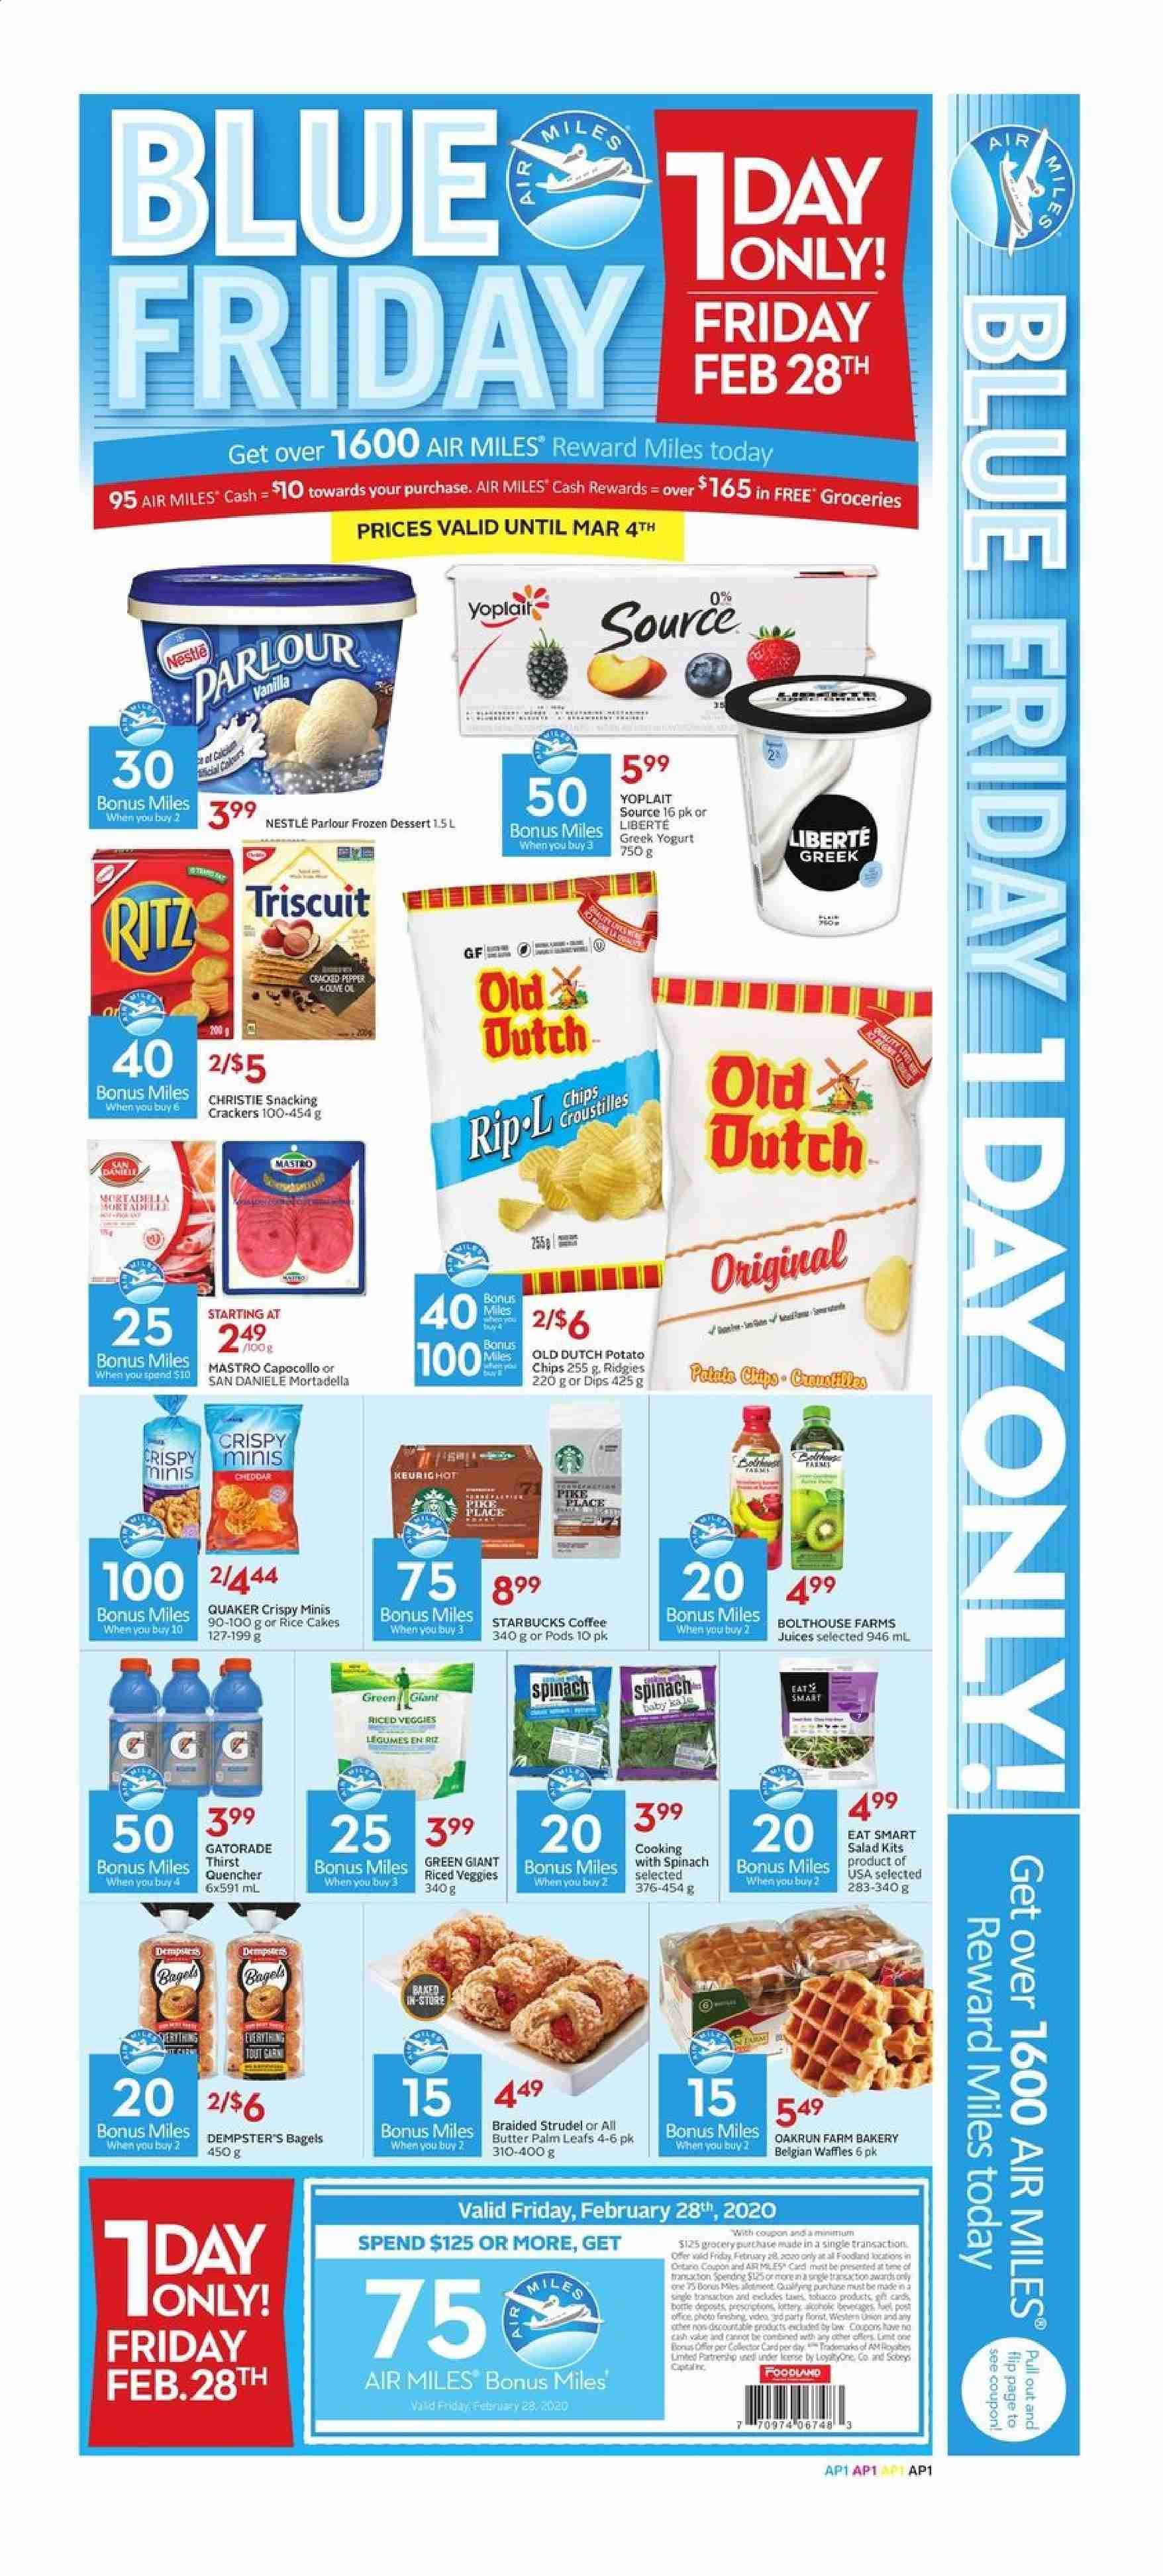 Foodland Flyer  - February 27, 2020 - March 04, 2020. Page 7.